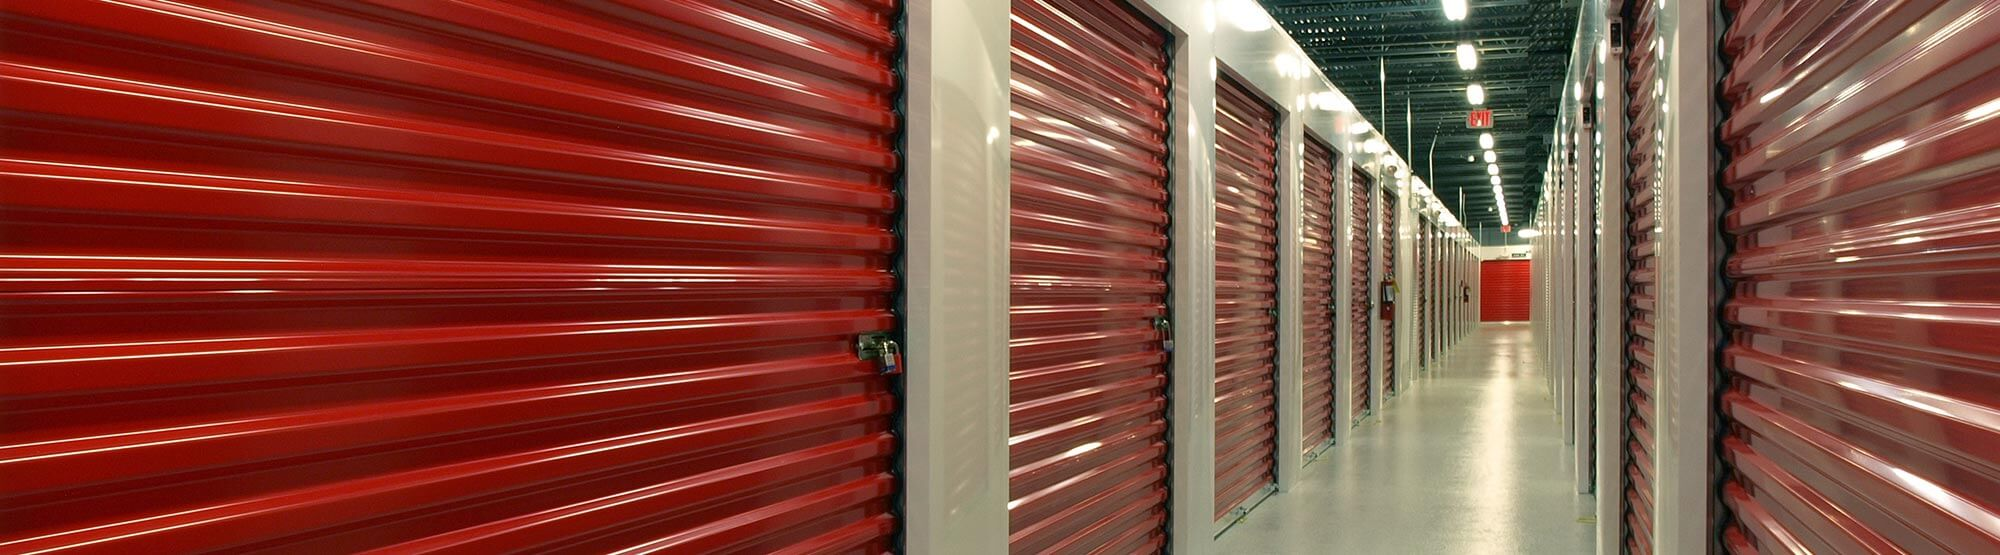 Row of indoor American Personal Storage units